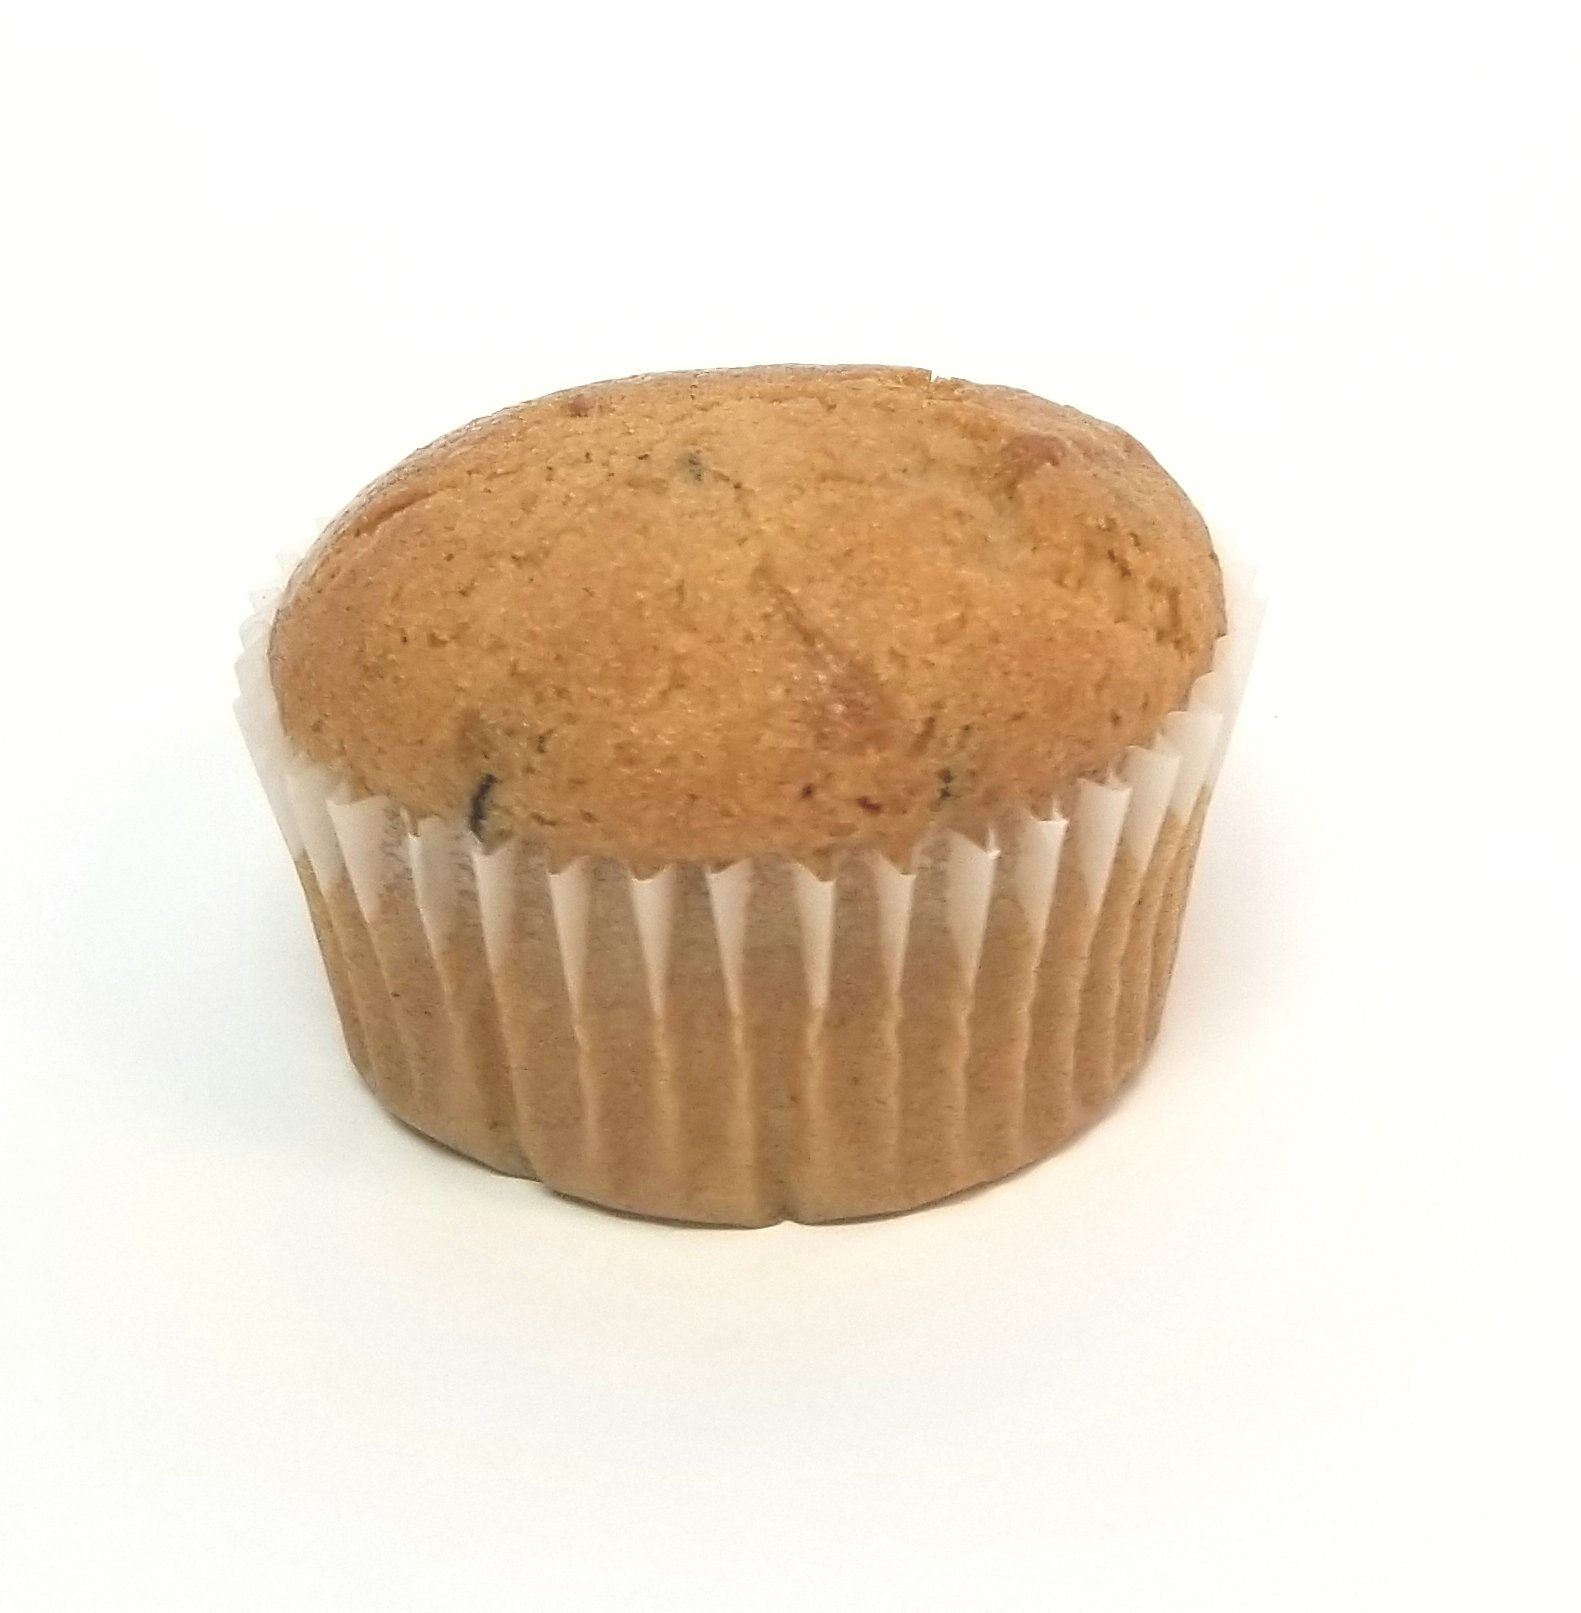 Delicious Low Carb Gluten-Free Cinnamon Spice Zucchini Muffins 12 Count Value Pack by Lilee's Gourmet Bakery